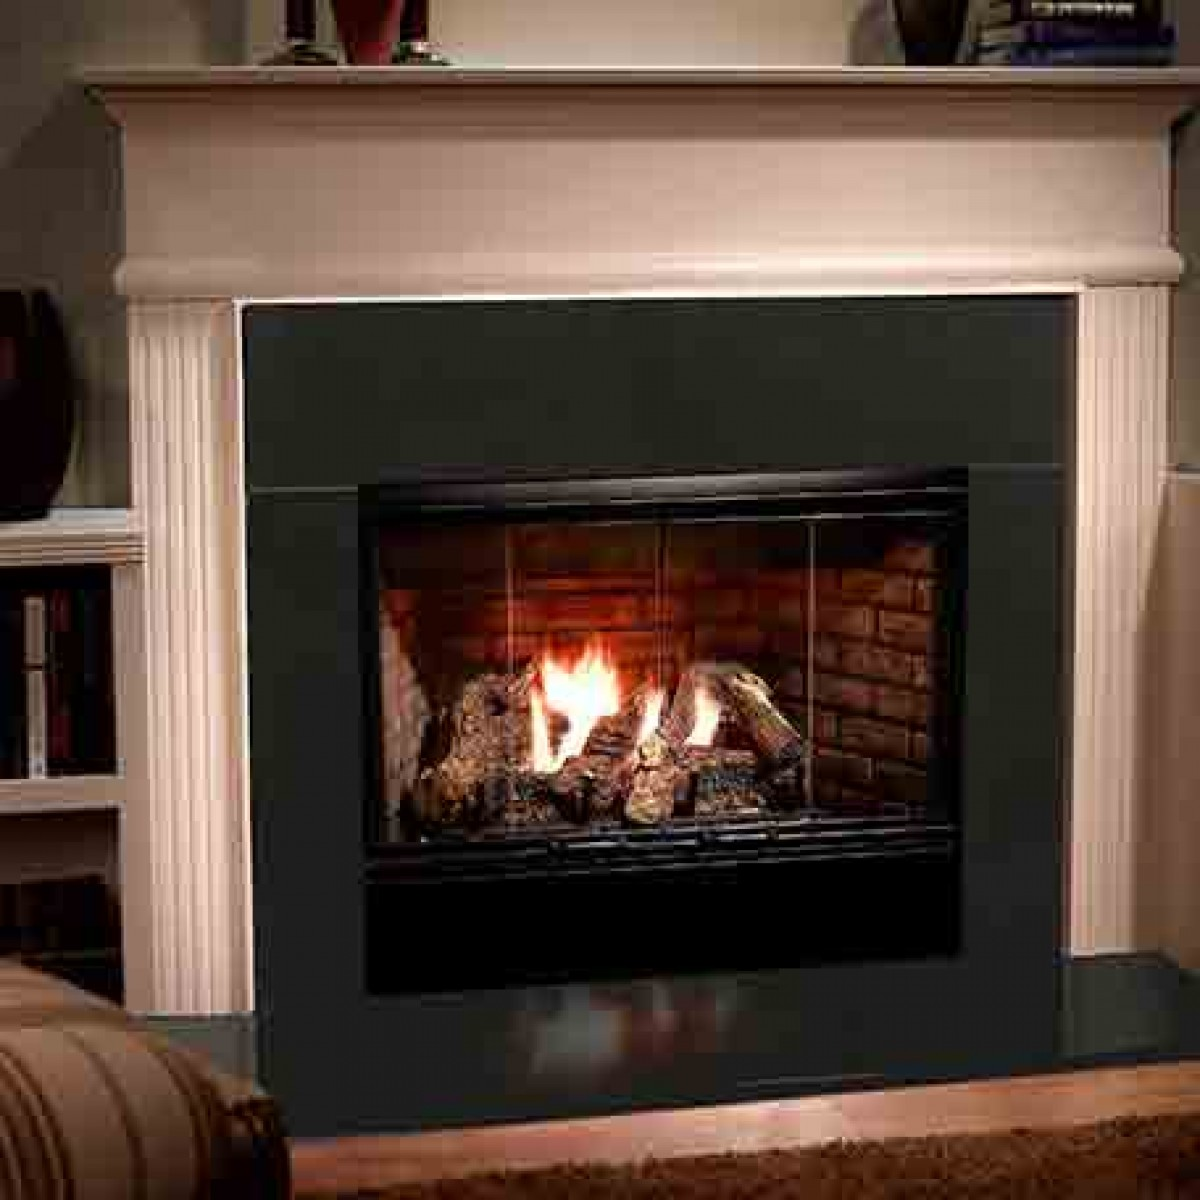 Majestic Reveal Open Hearth BVent Gas Fireplace radiant unit with IntelliFire